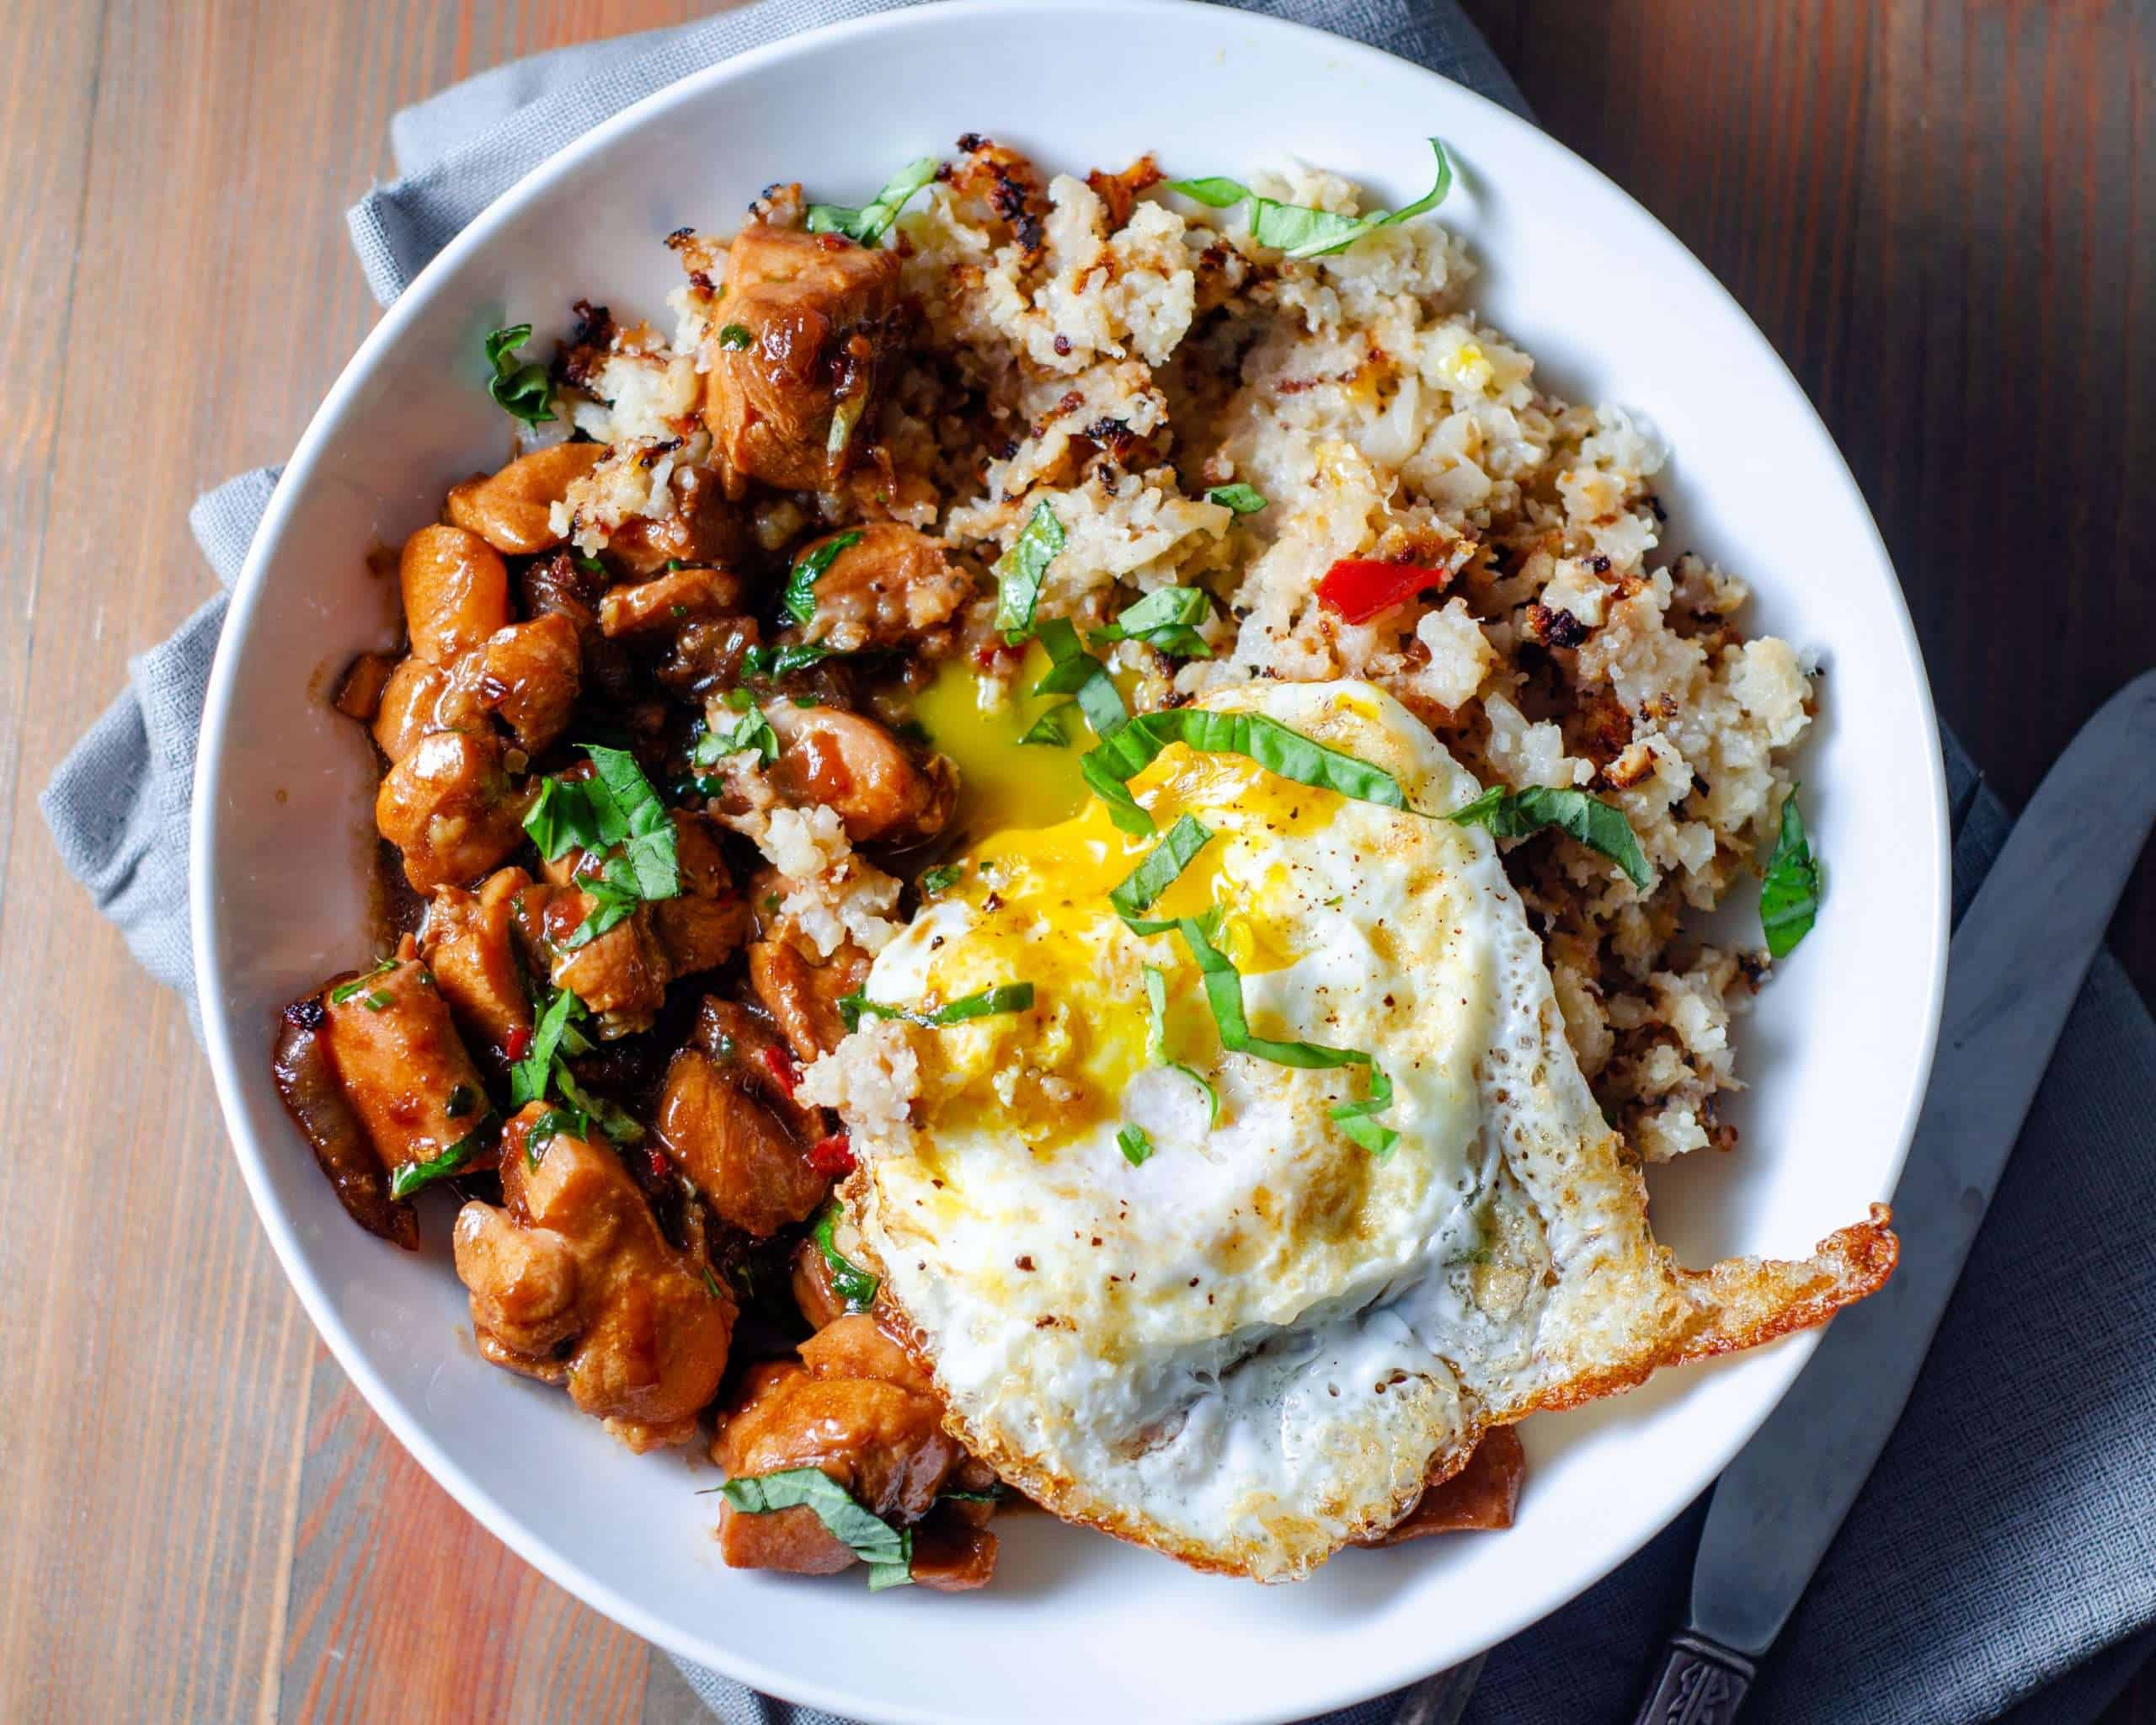 Low Carb Thai basil chicken with a fried egg and cauliflower rice